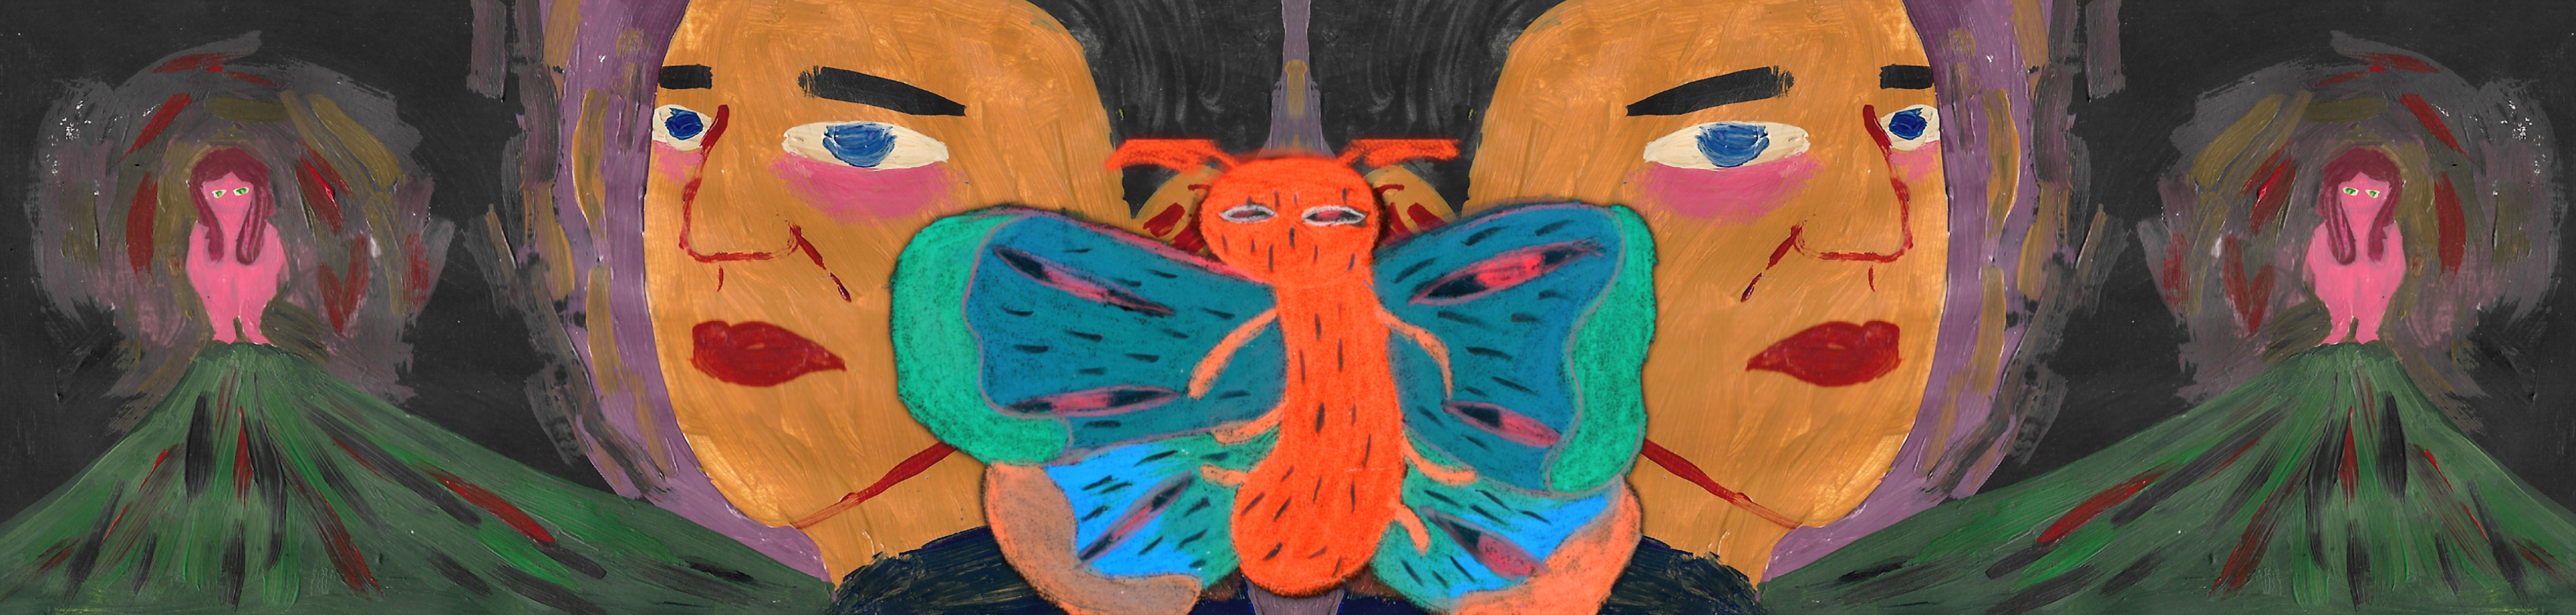 painted image of a colourful butterfly with two worried faces mirrored symmetrically beyond its wings